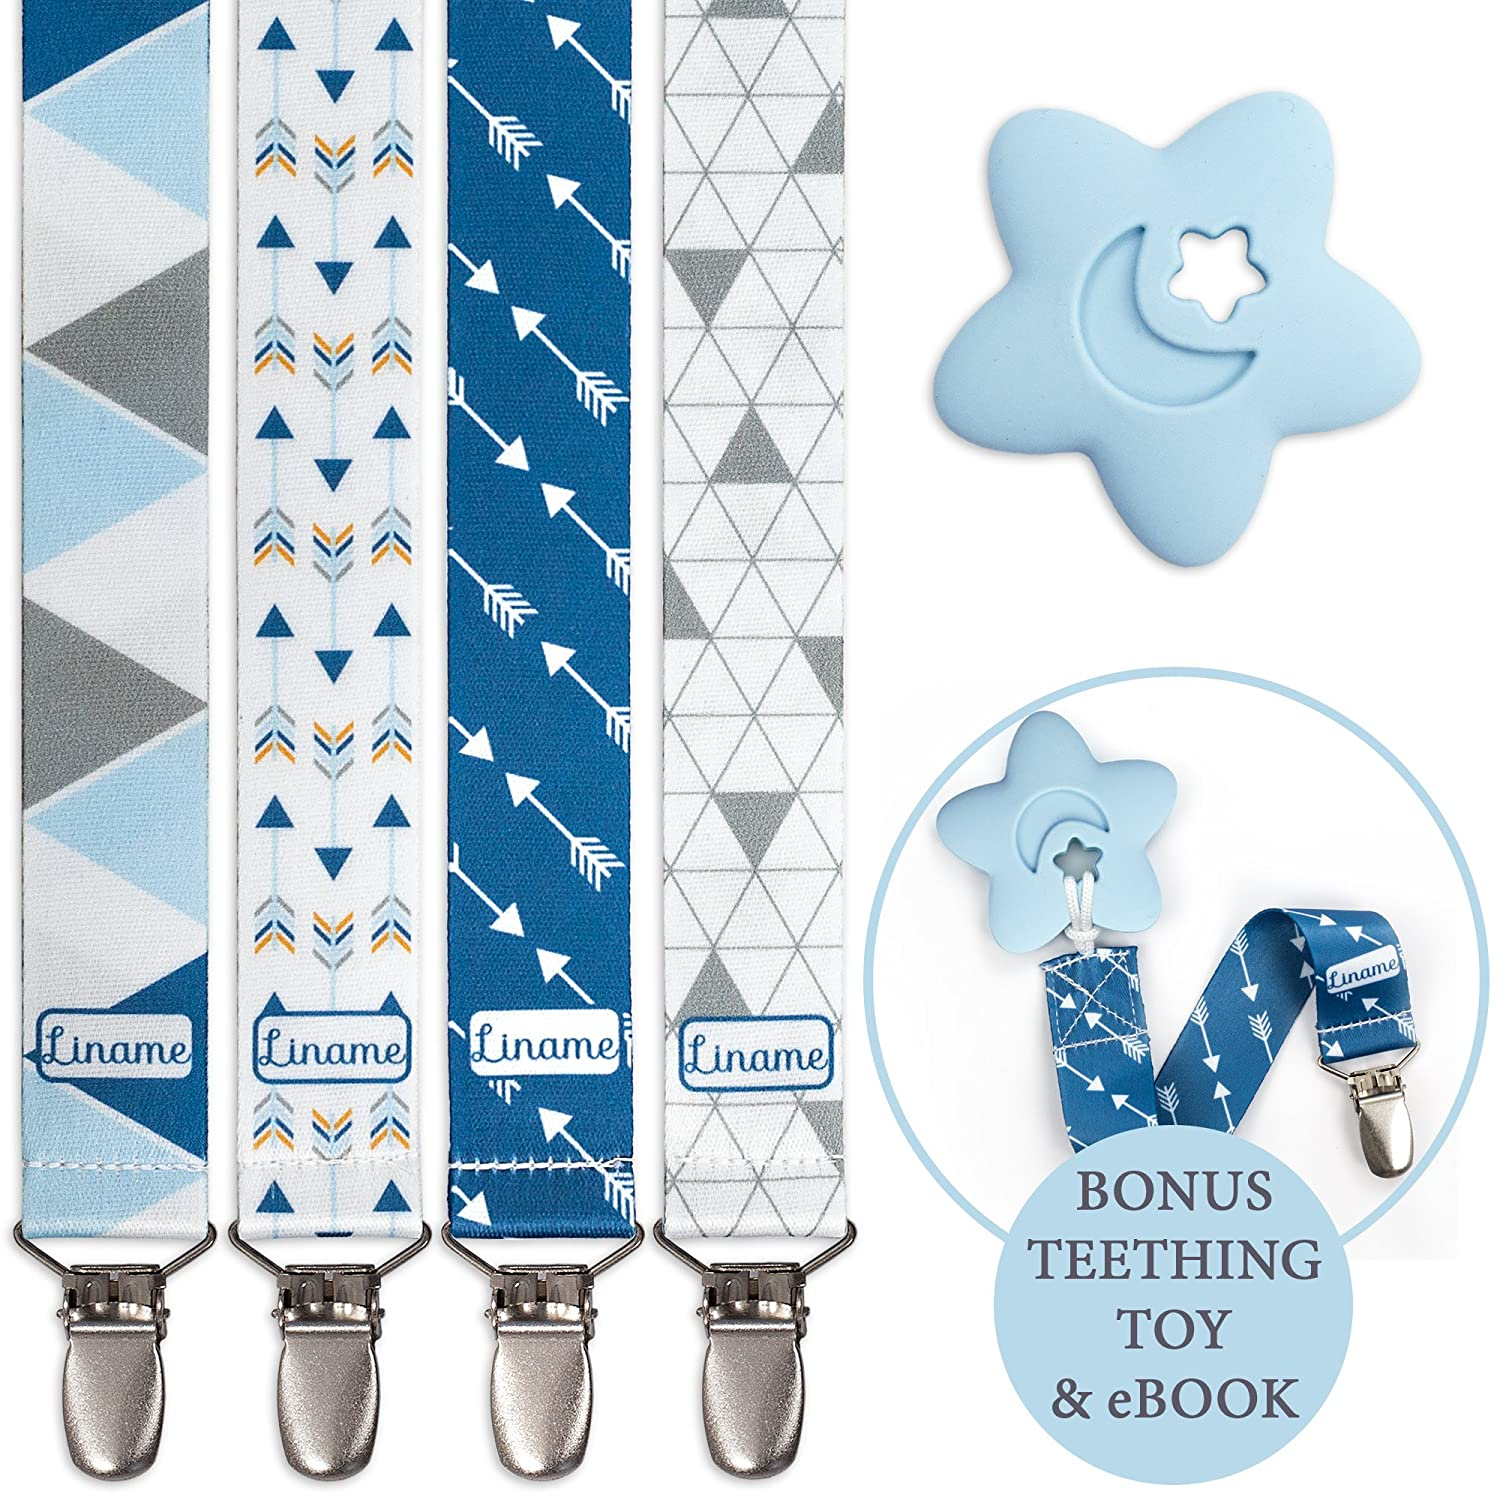 Liname Pacifier Clip for Boys with Bonus Teething Toy & eBook - 4 Pack Gift Packaging - Premium Quality & Unique Design - Pacifier Clips Fit All Pacifiers & Soothers - Perfect Baby Gift blue4